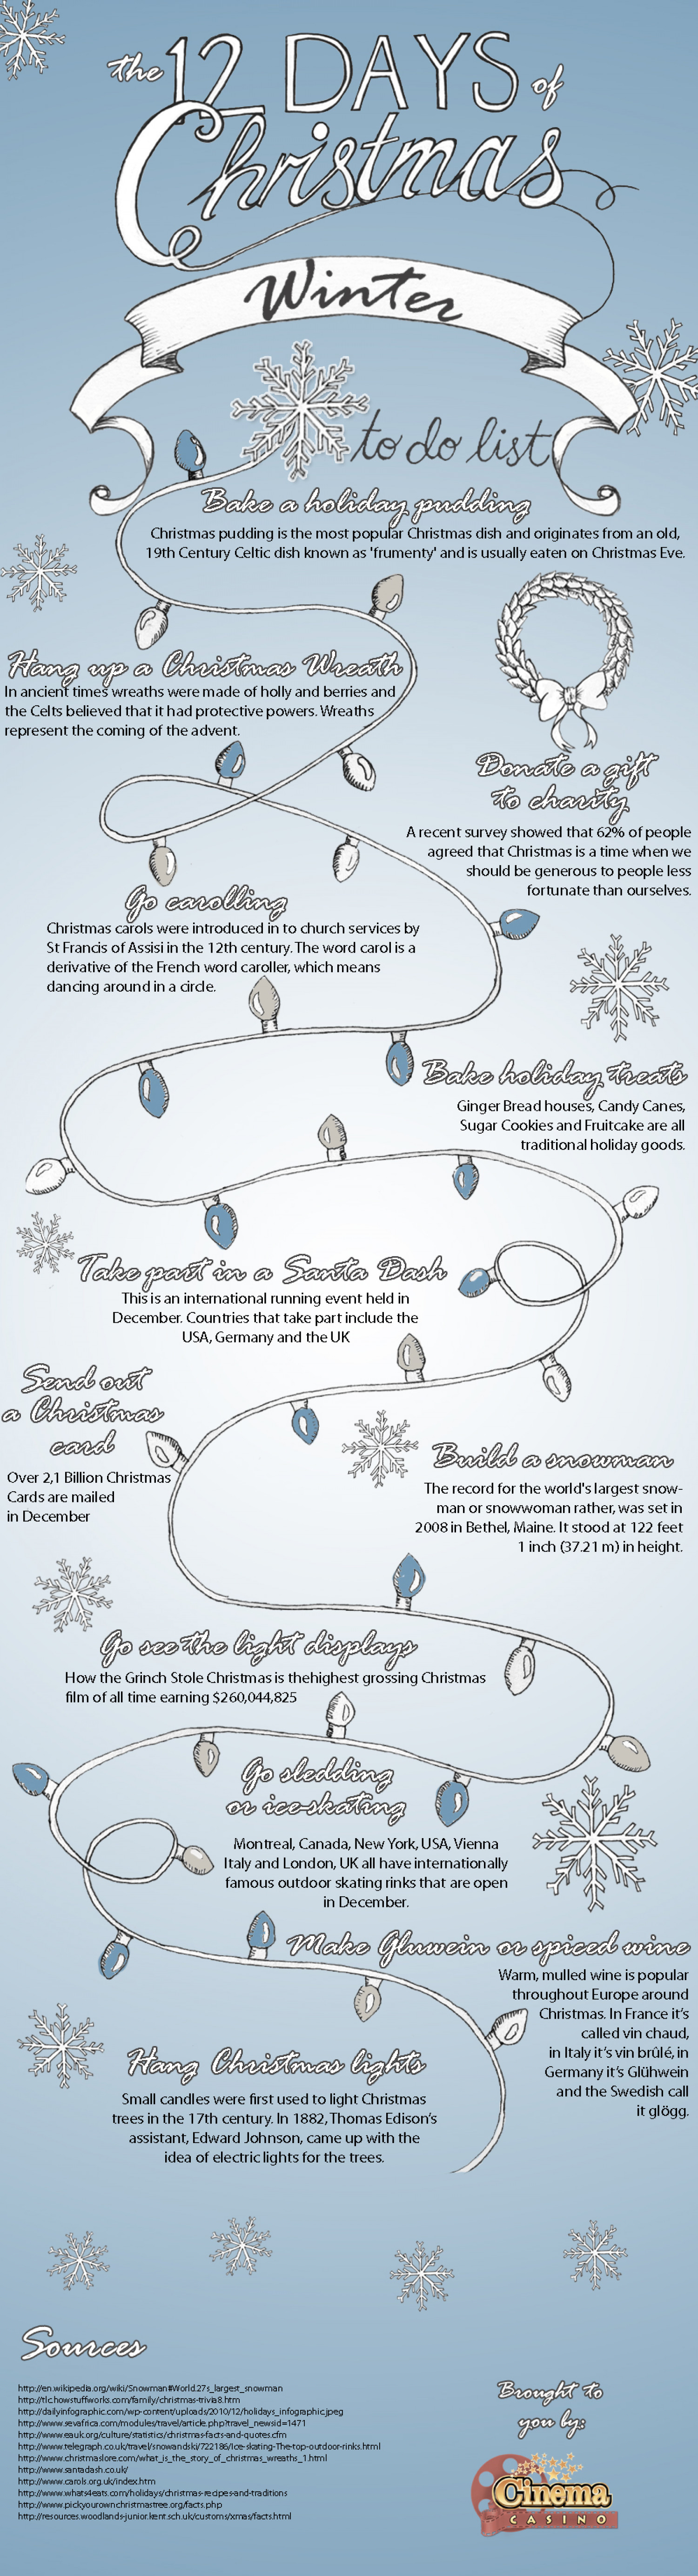 12 Days of Christmas - Winter Infographic